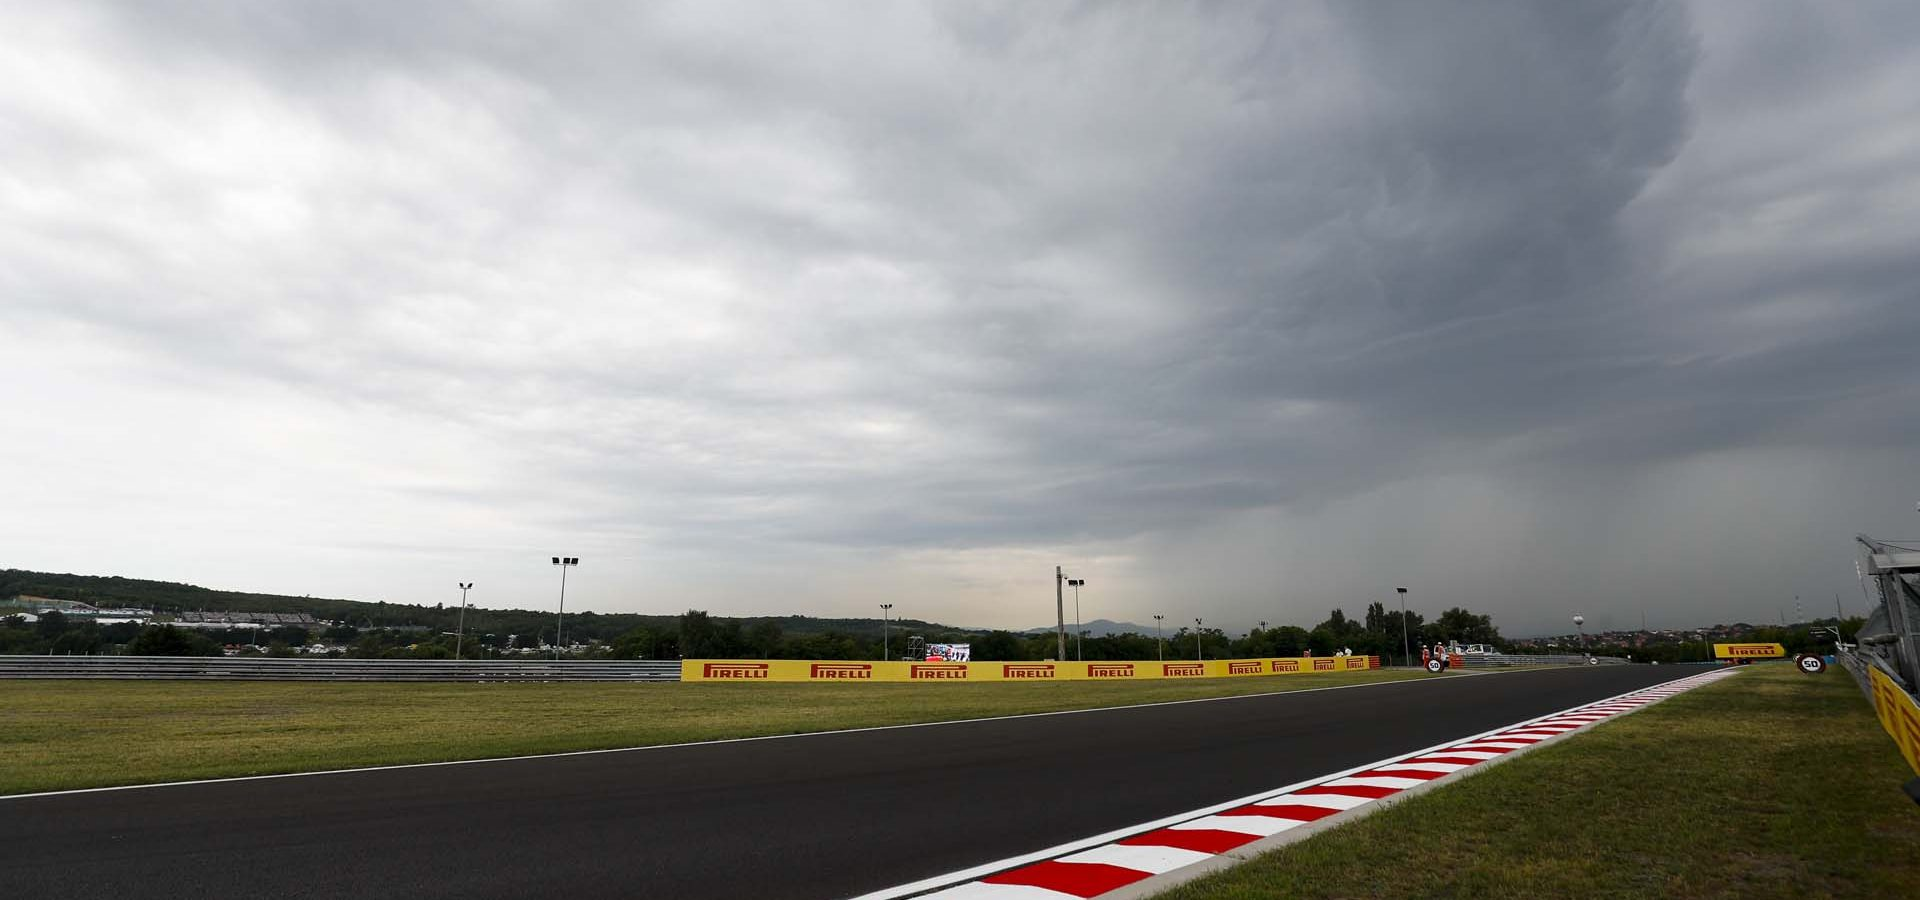 HUNGARORING, HUNGARY - AUGUST 02: Dark clouds over the track during the Hungarian GP at Hungaroring on August 02, 2019 in Hungaroring, Hungary. (Photo by Sam Bloxham / LAT Images)